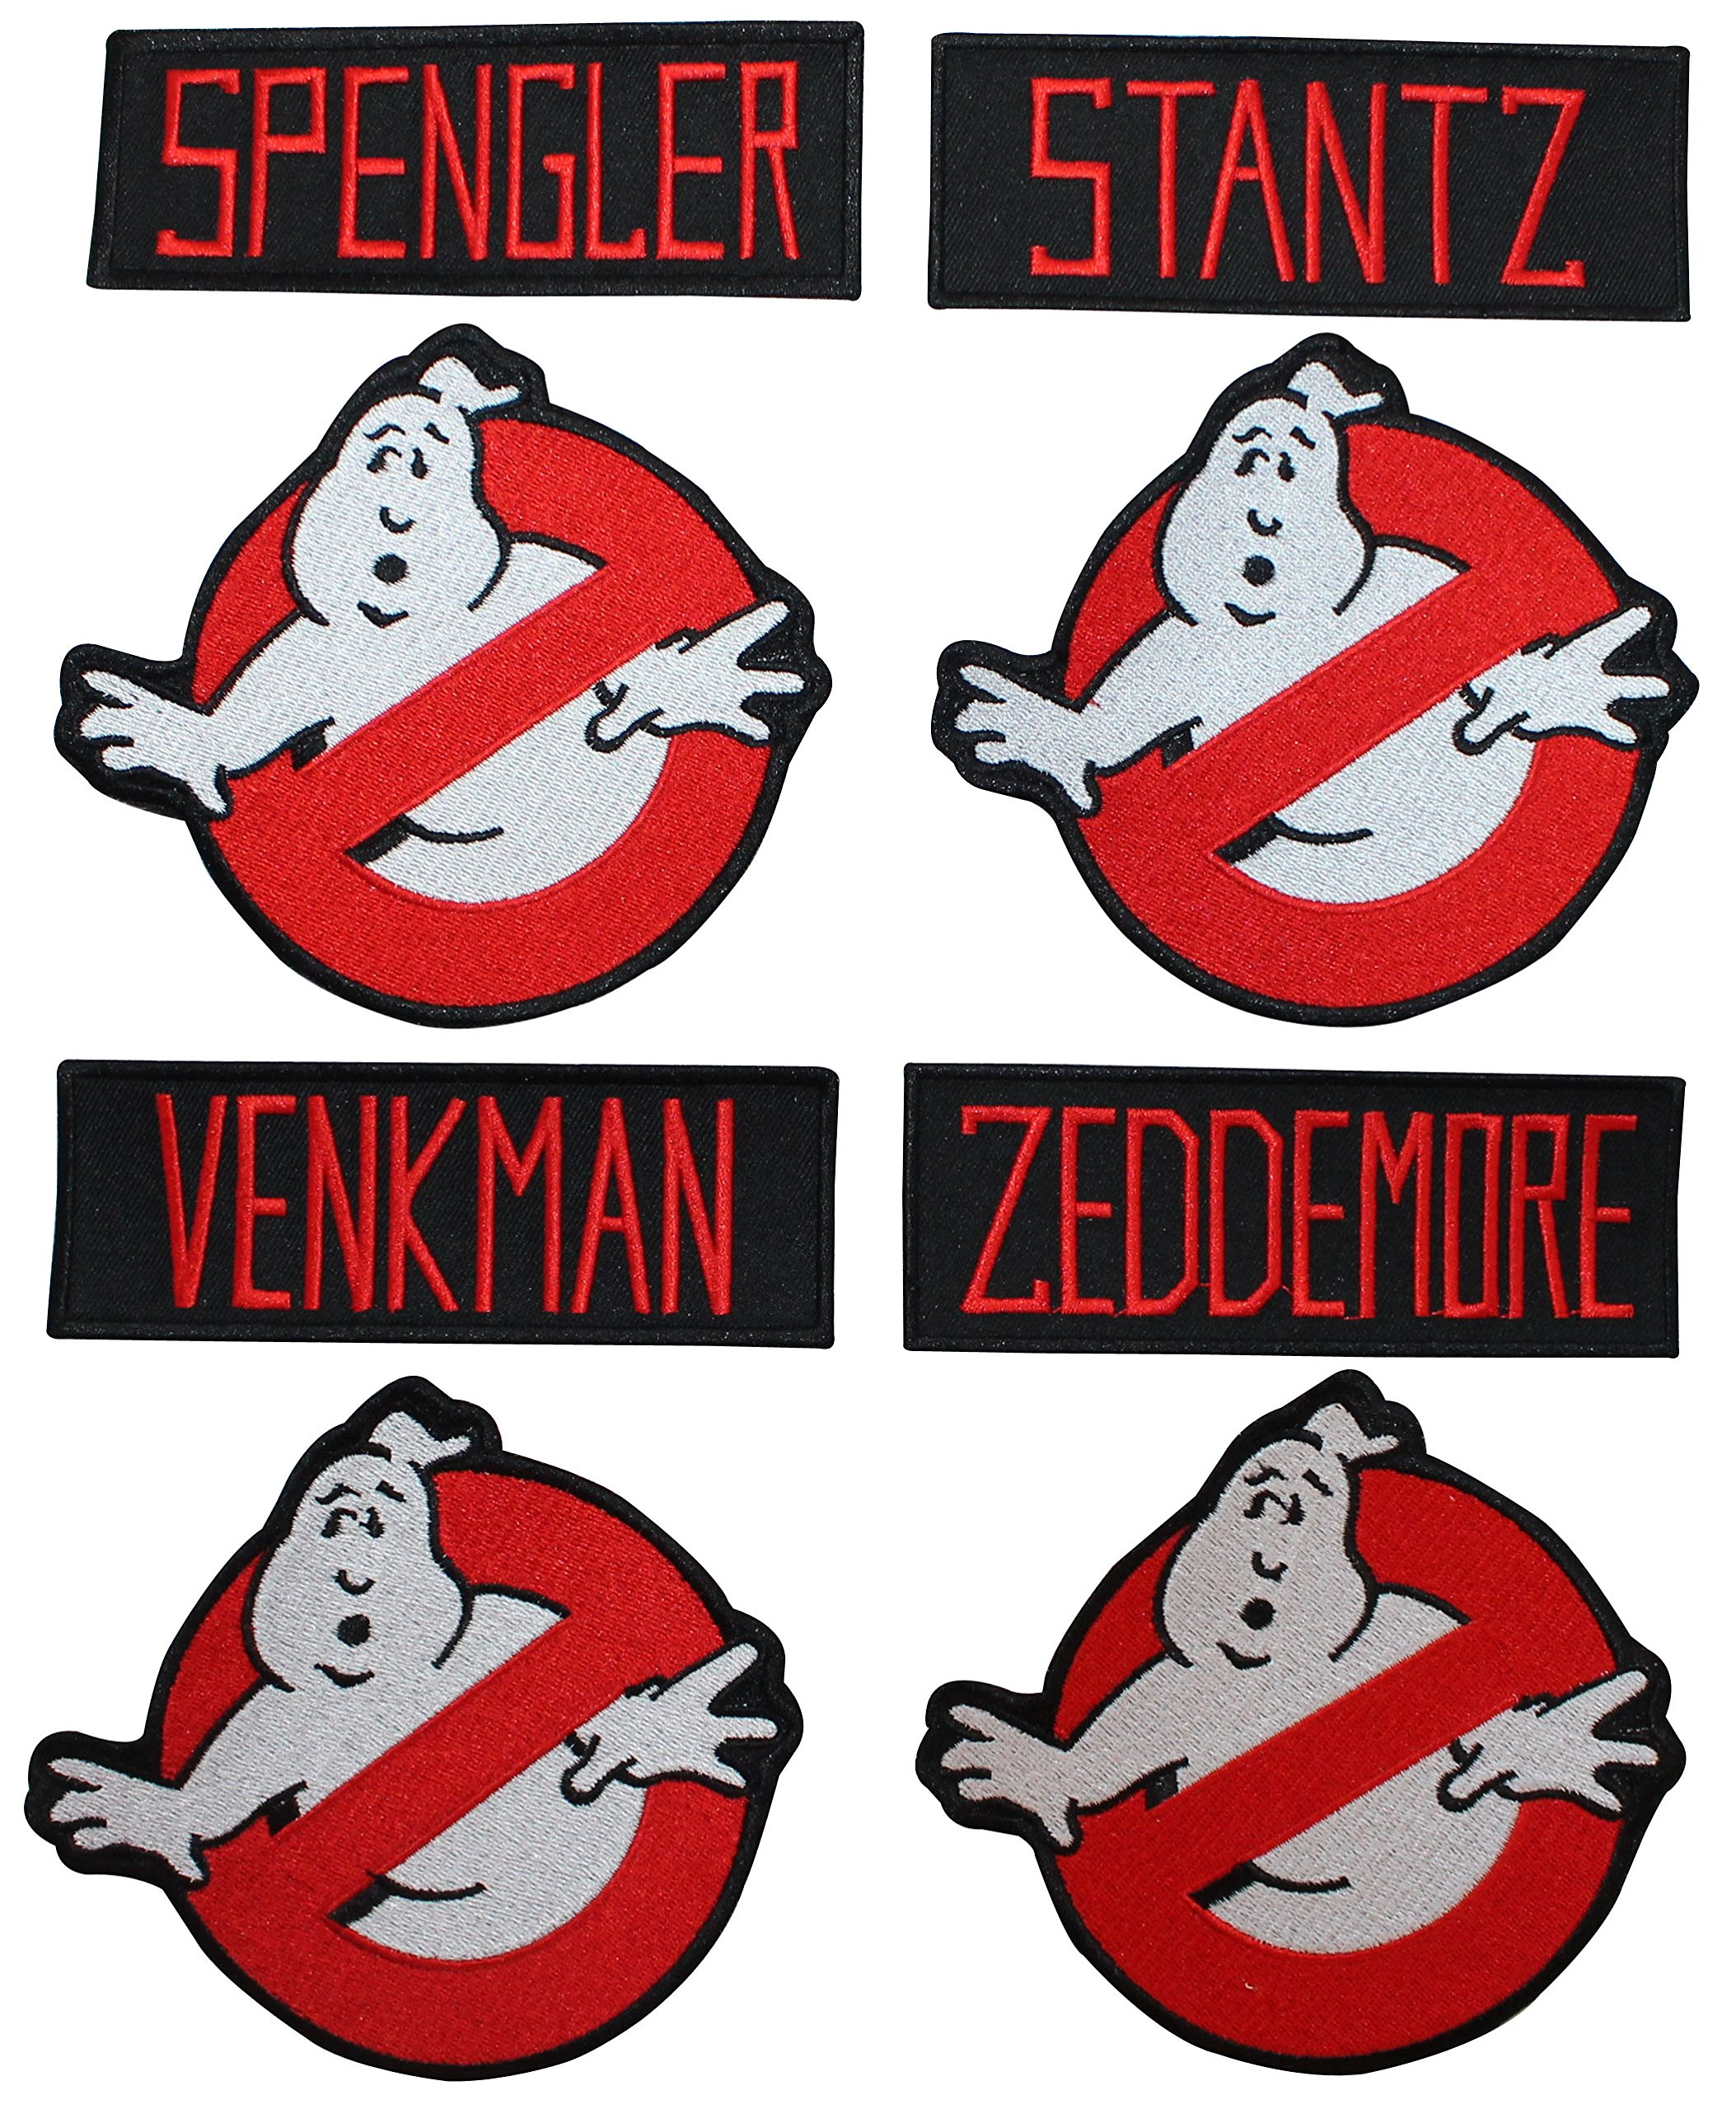 Graphic Dust Lot of 4 Ghostbusters Embroidered Iron on Patch Applique Logo Costume Cosplay Uniform Sign Symbol Kill Ghost Zombie Team